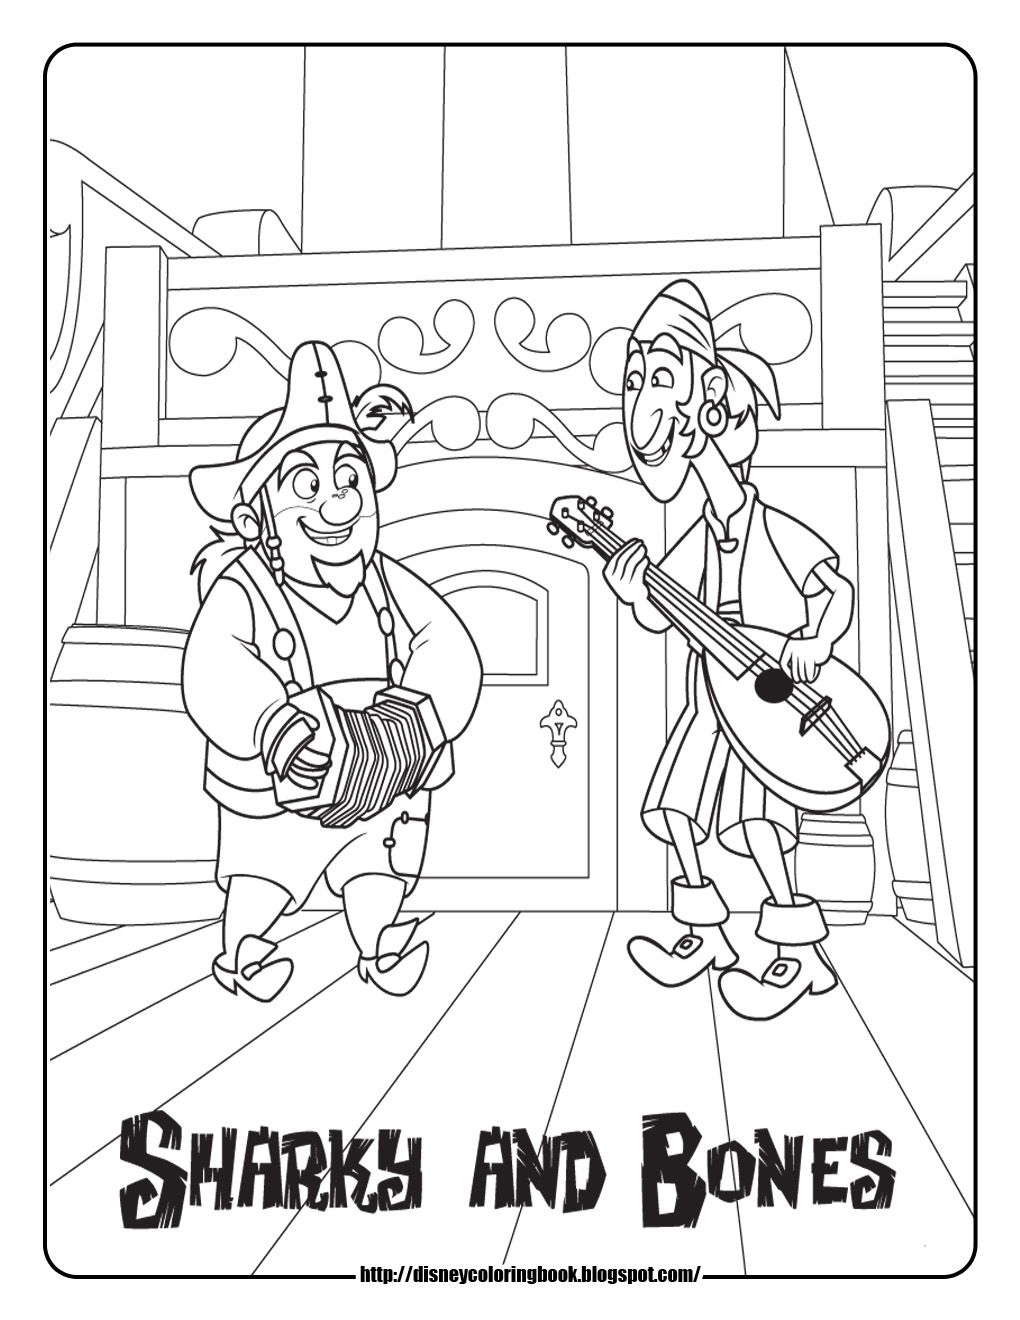 Pirate colouring pages to print - Jake And The Never Land Pirates Coloring Pages Sharky And Bones